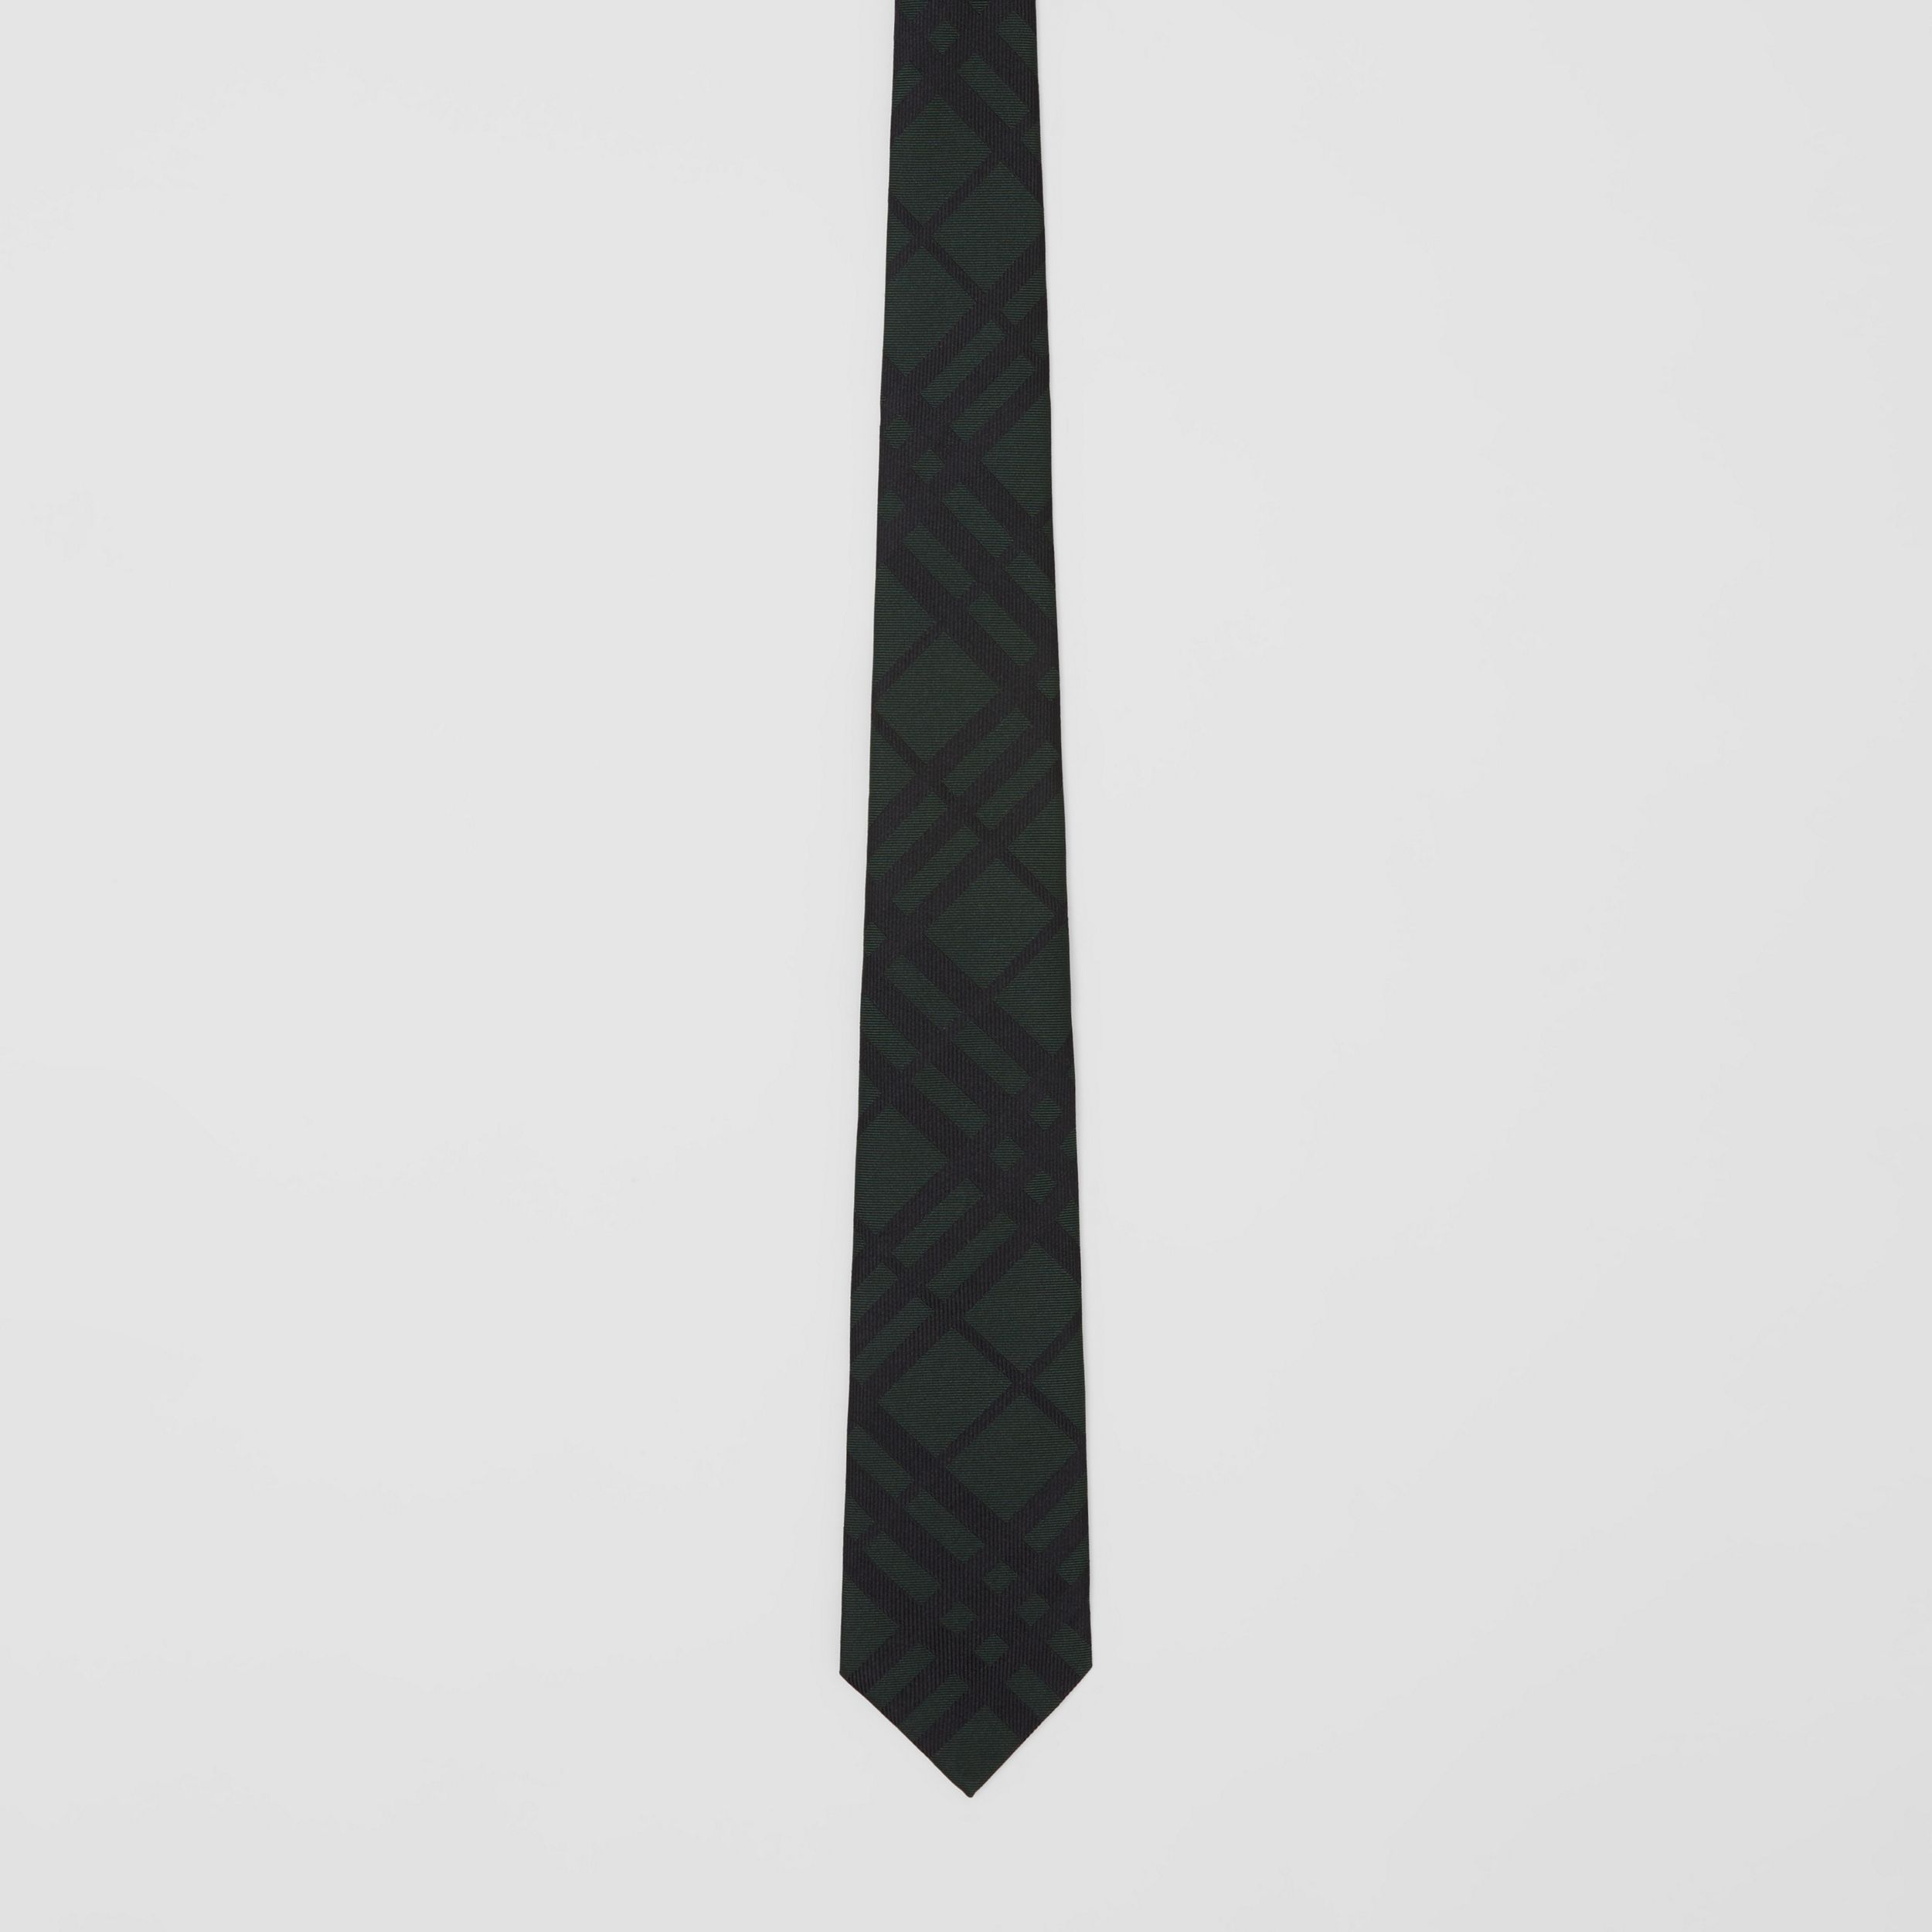 Classic Cut Check Silk Jacquard Tie in Dark Forest Green - Men | Burberry Canada - 4